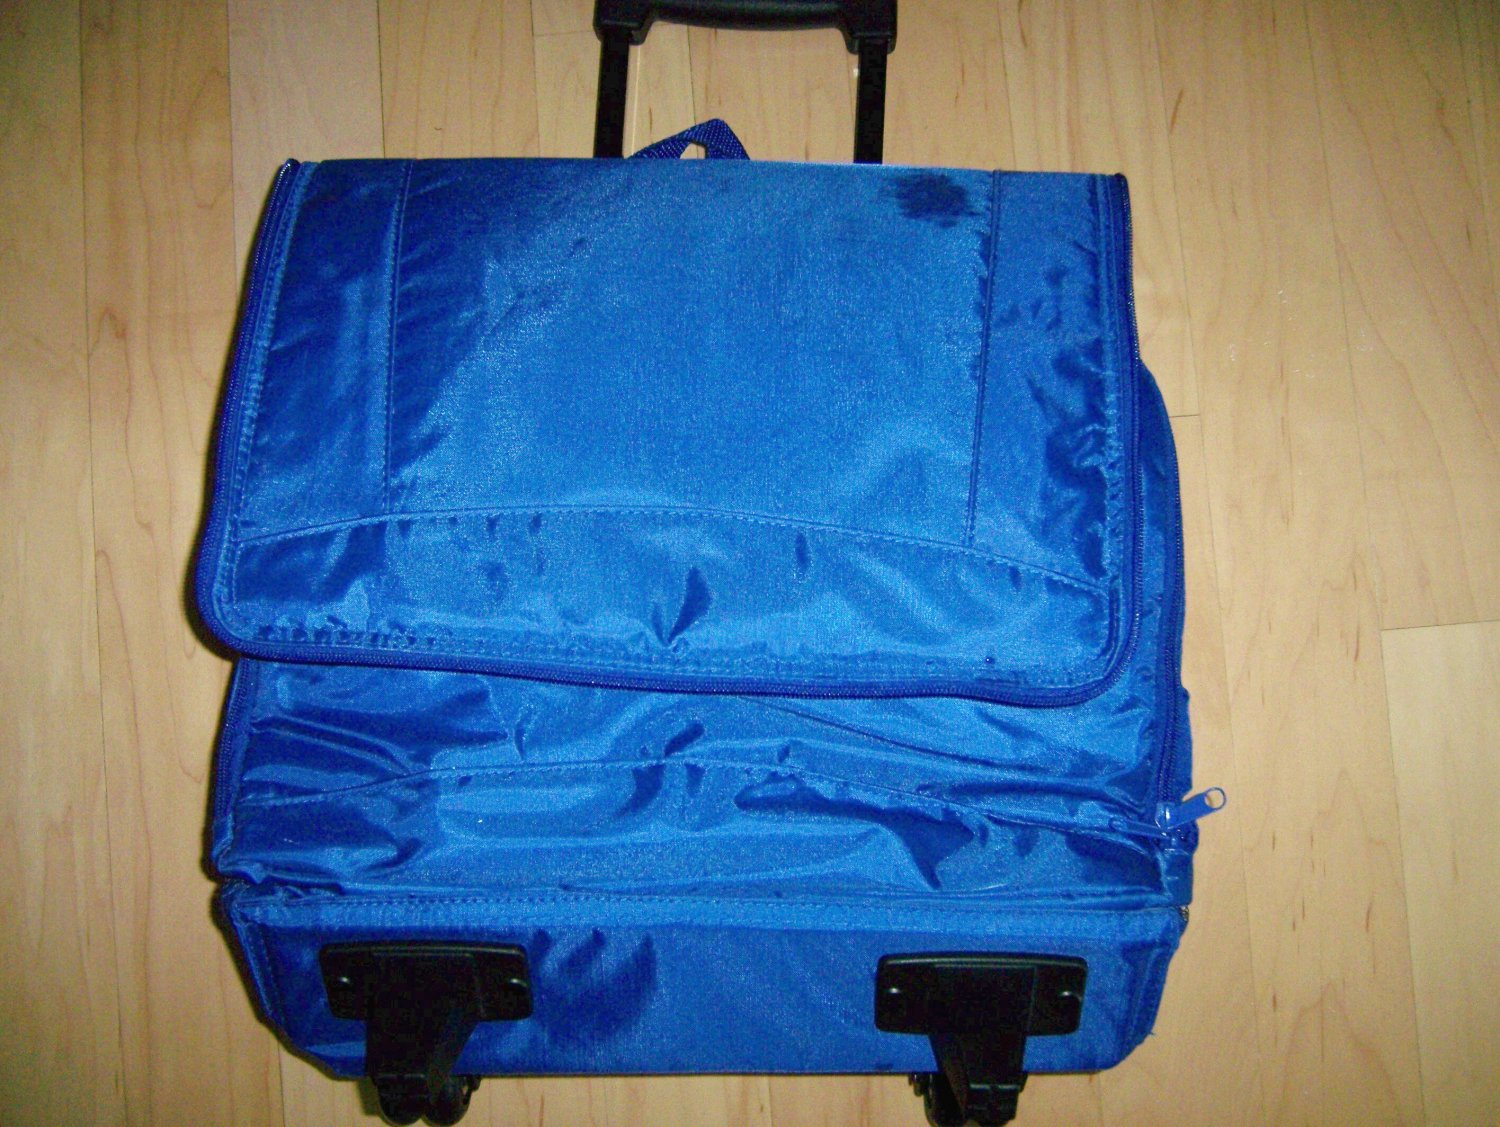 Hot/Cold Travel Pack w Wheels & Handle BNK1106